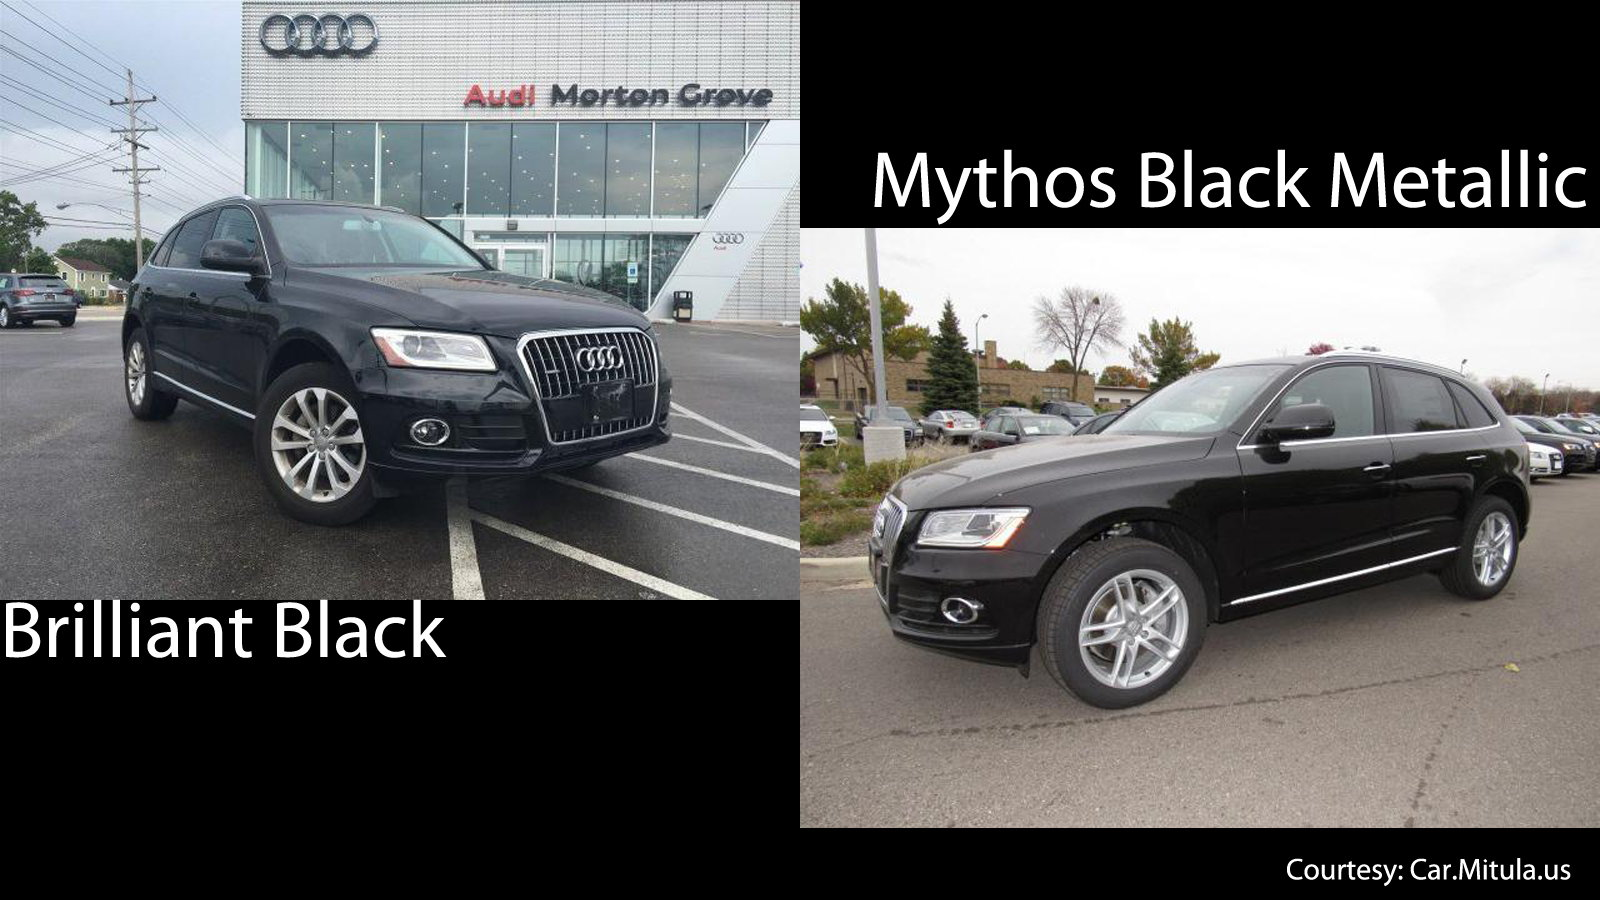 1. Brilliant or Mythos Black